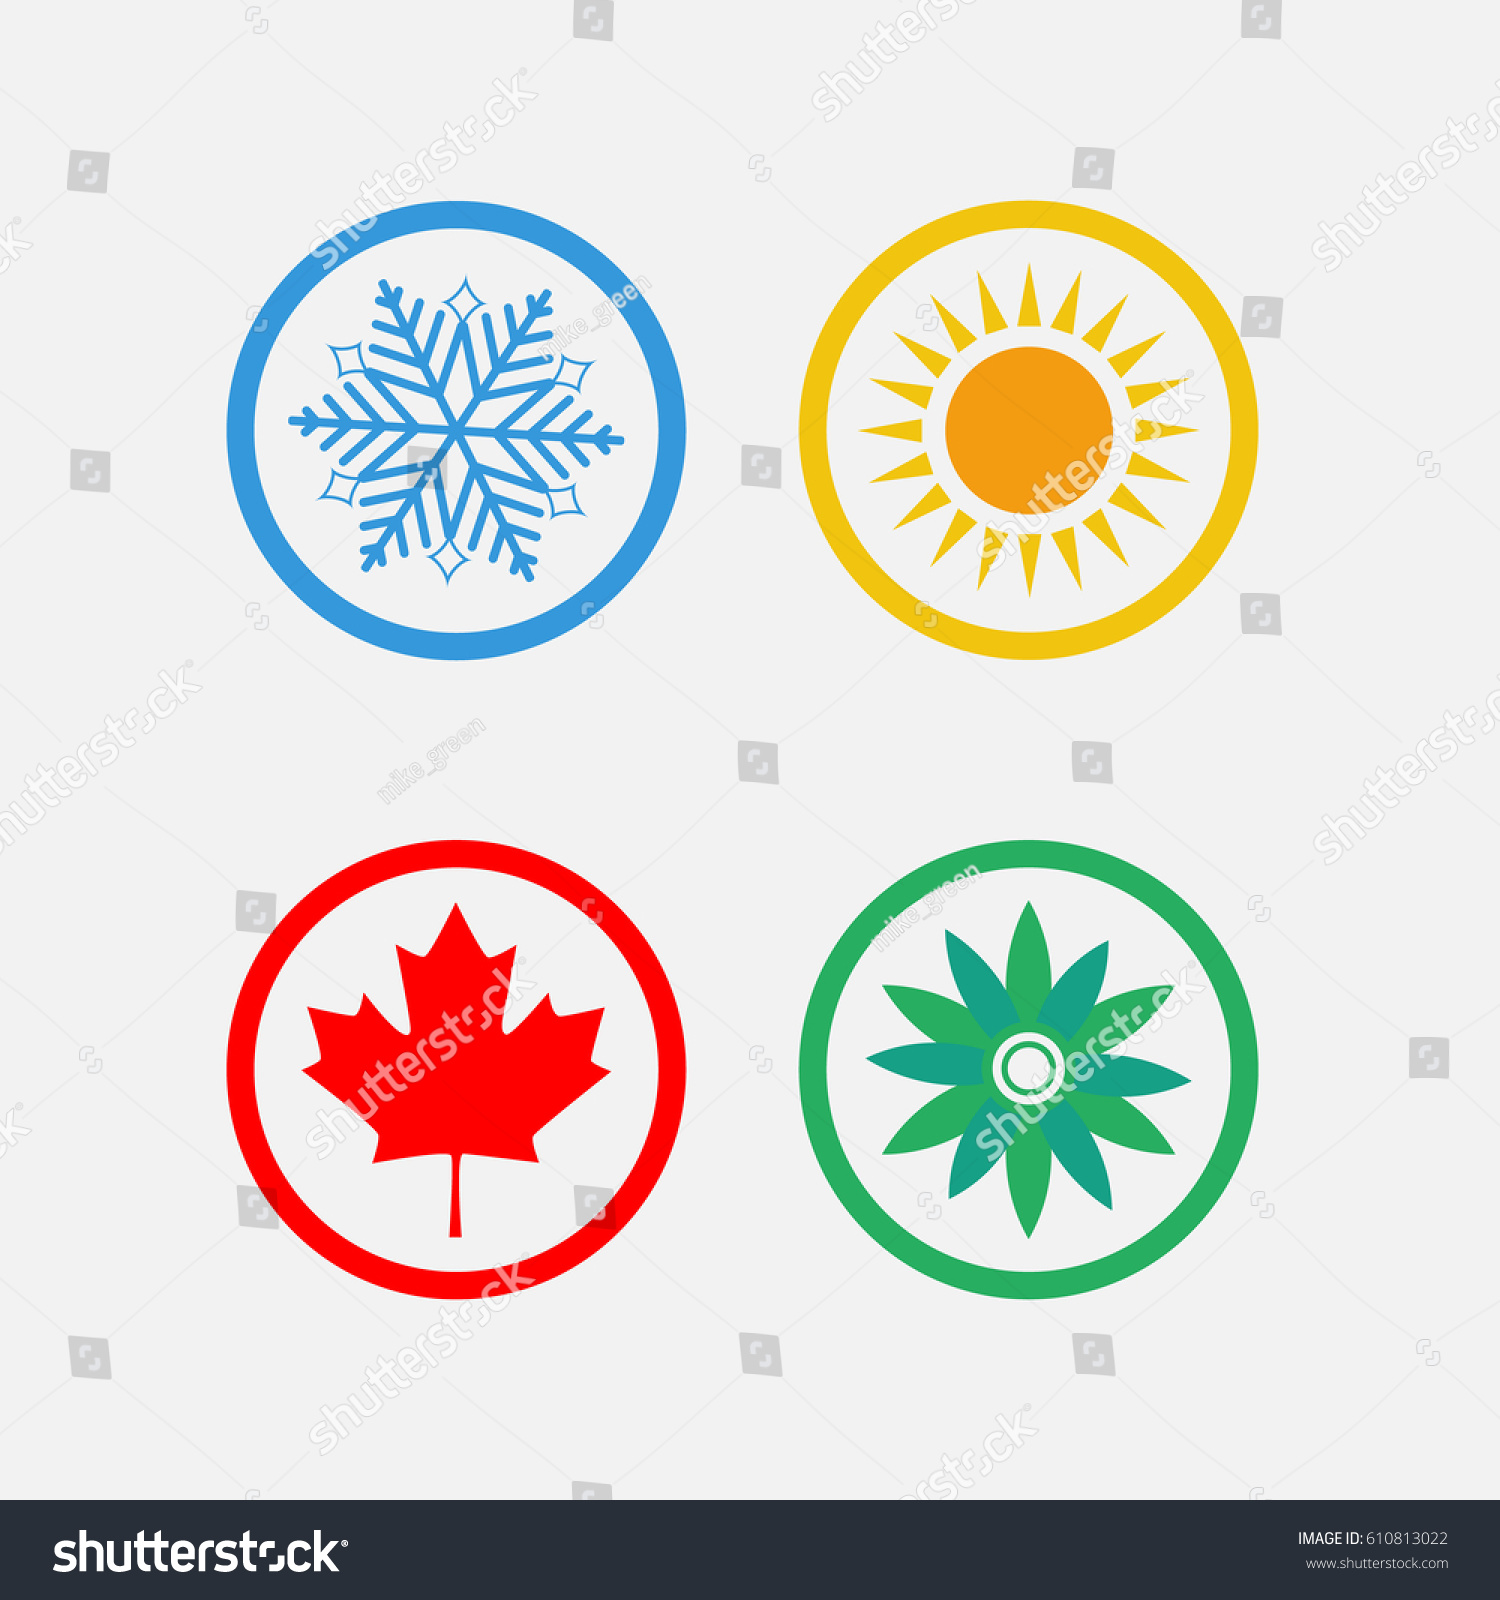 Royalty Free Stock Illustration Of Season Symbols Winter Spring